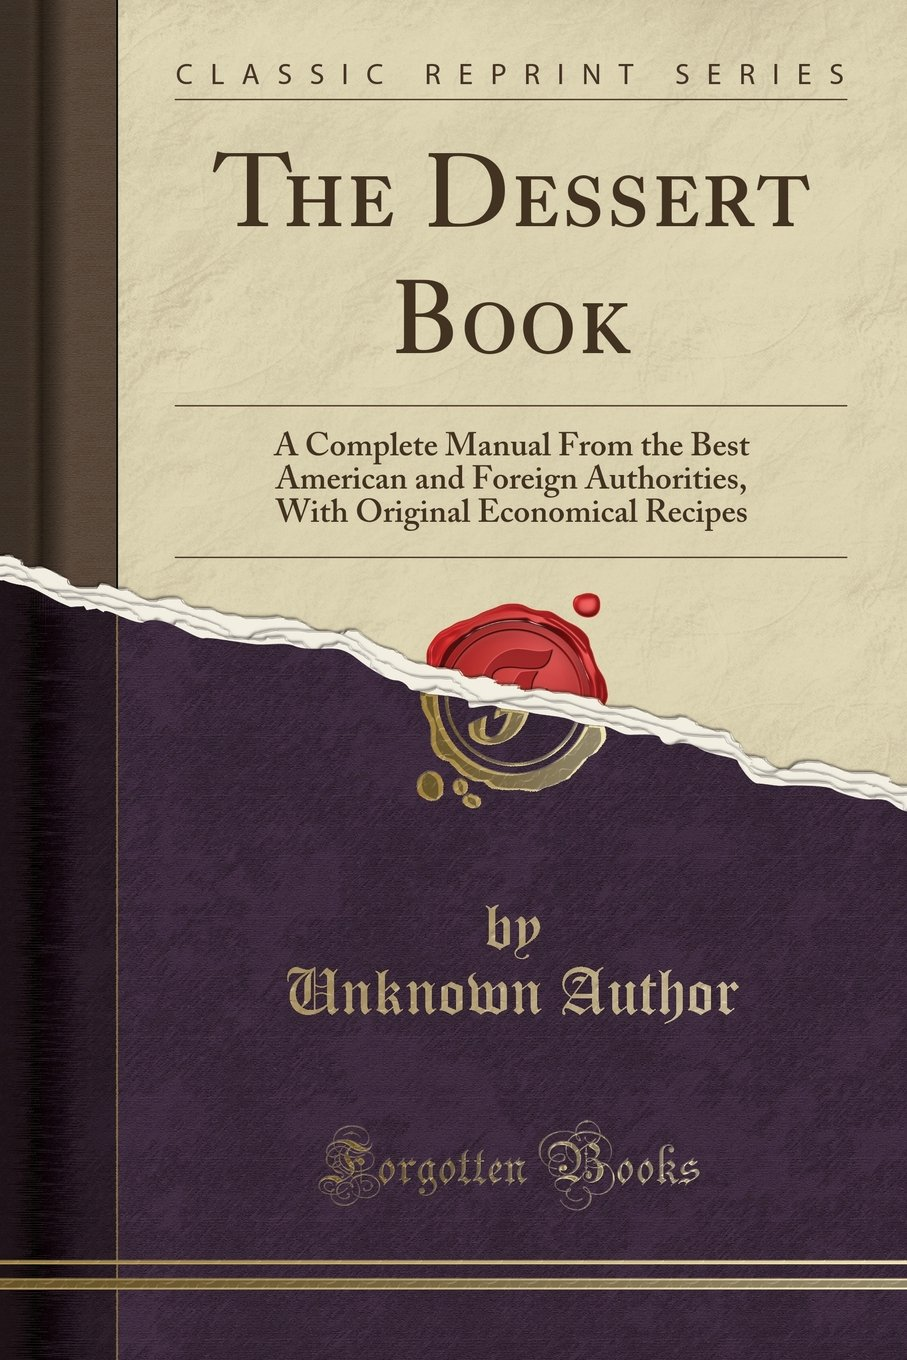 The Dessert Book: A Complete Manual From the Best American and Foreign Authorities, With Original Economical Recipes (Classic Reprint) pdf epub